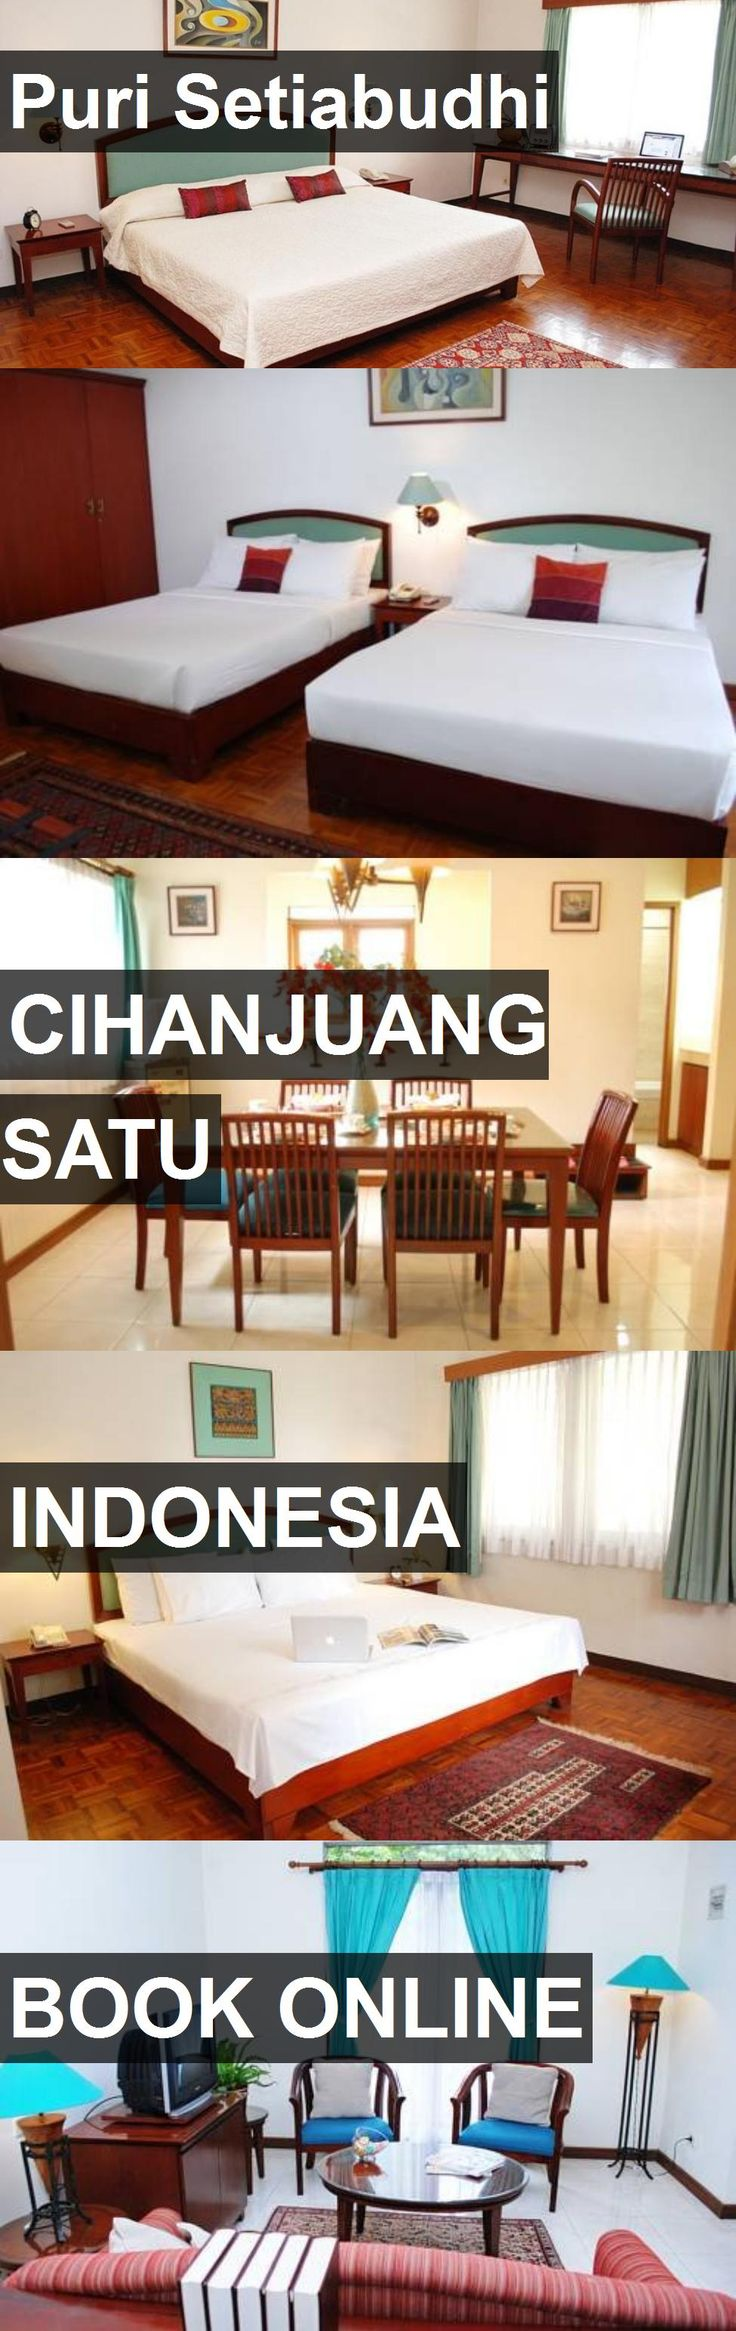 Hotel Puri Setiabudhi in Cihanjuang Satu, Indonesia. For more information, photos, reviews and best prices please follow the link. #Indonesia #CihanjuangSatu #PuriSetiabudhi #hotel #travel #vacation